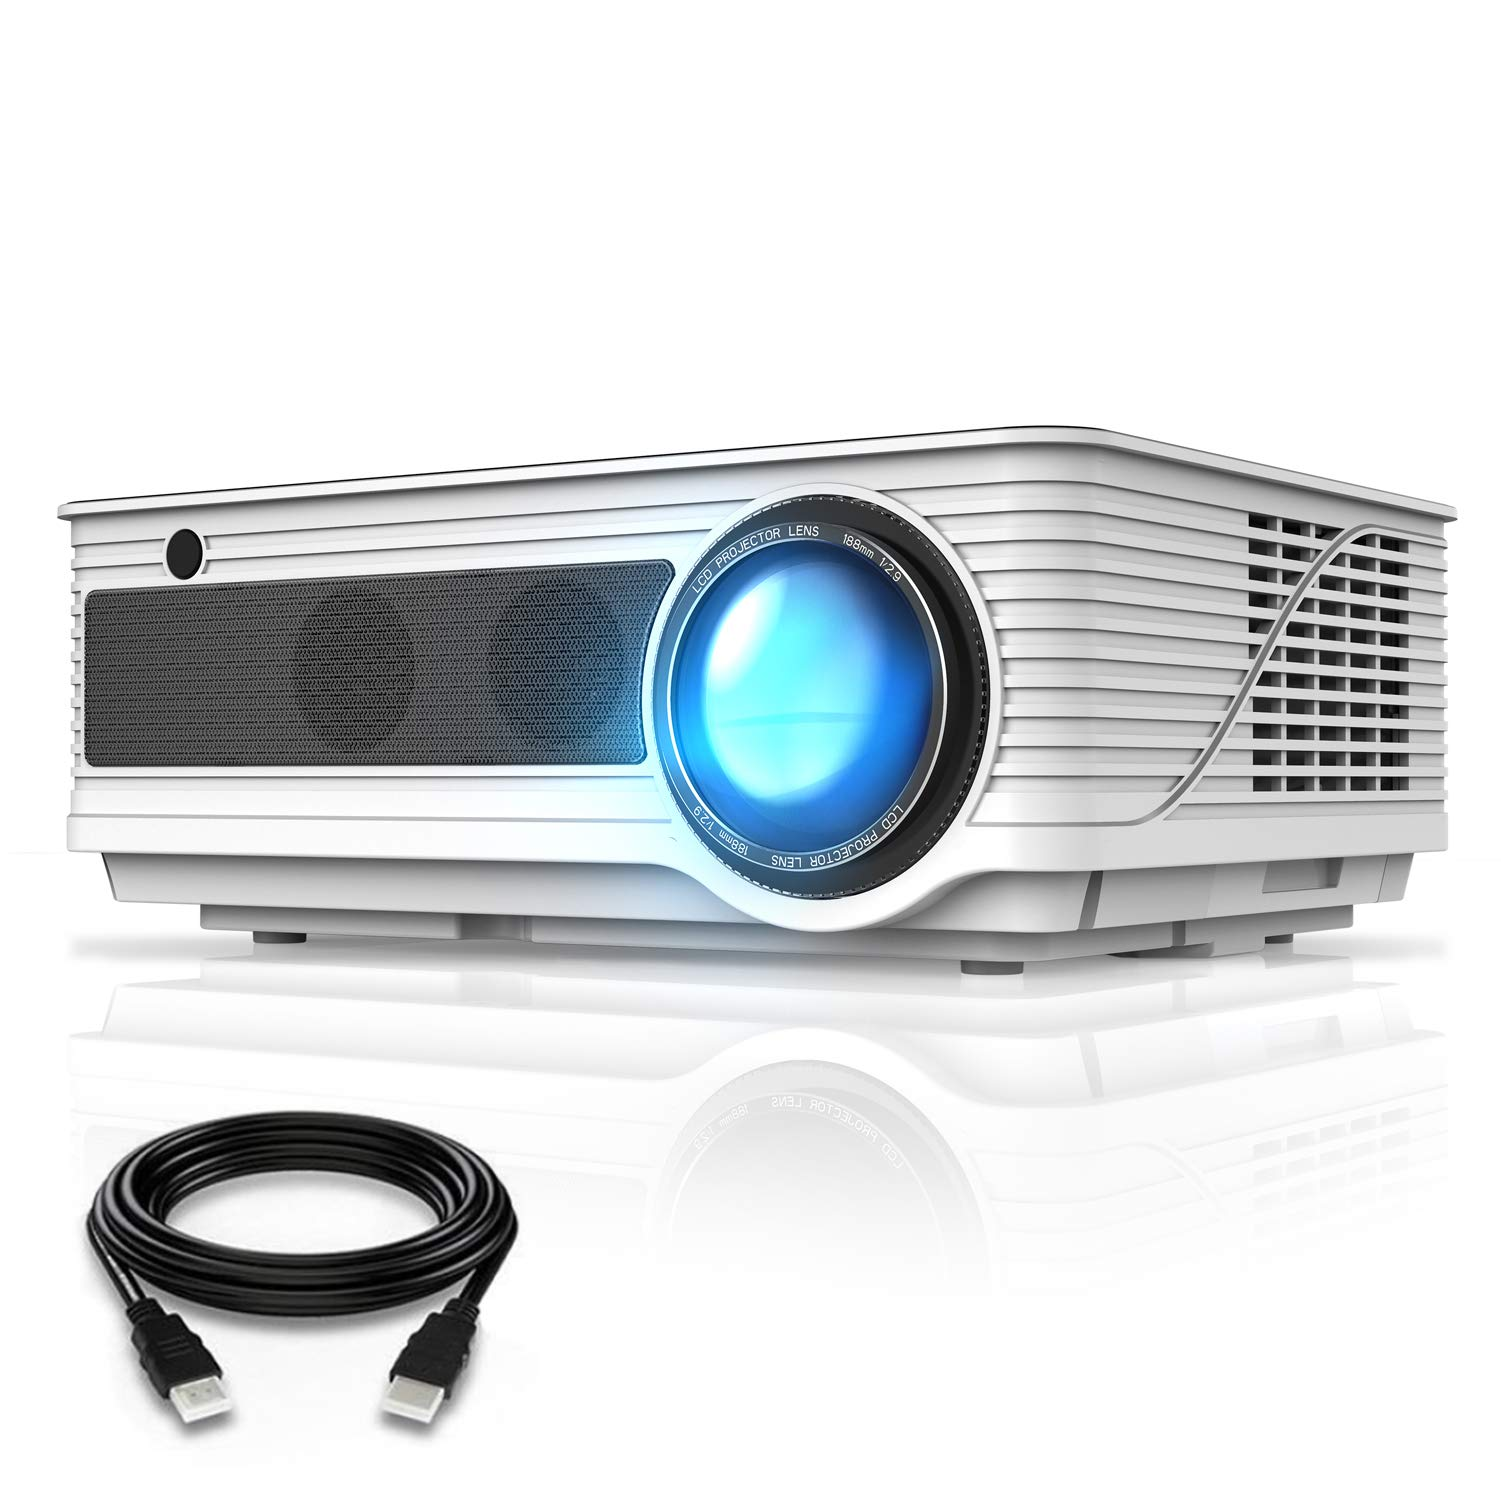 VIVIMAGE Cinemoon 580 Projector1080P Supported, 4000 Lux High Brightness Video Projector with 200'' Projection Size Includes HDMI Cable by VIVIMAGE (Image #1)